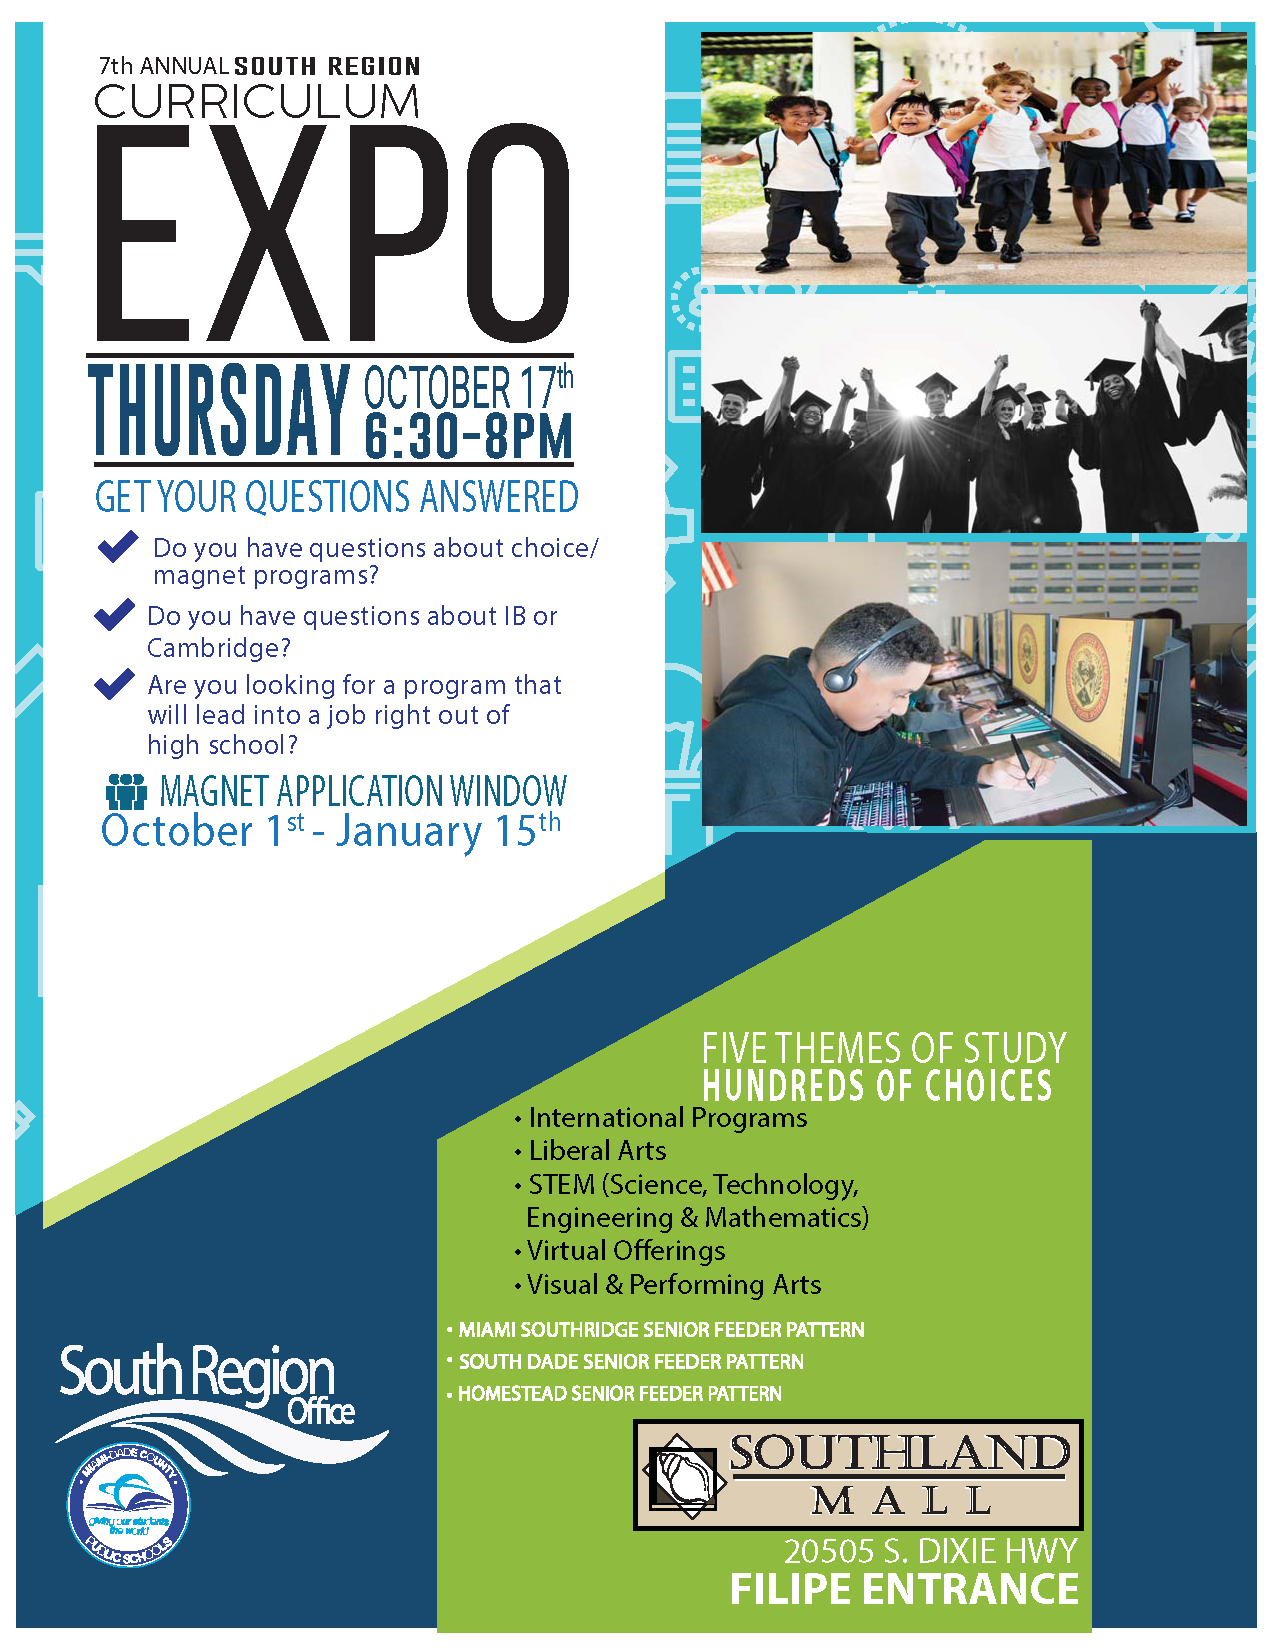 Curriculum Expo @ Southland Mall (FILIPE ENTRANCE)